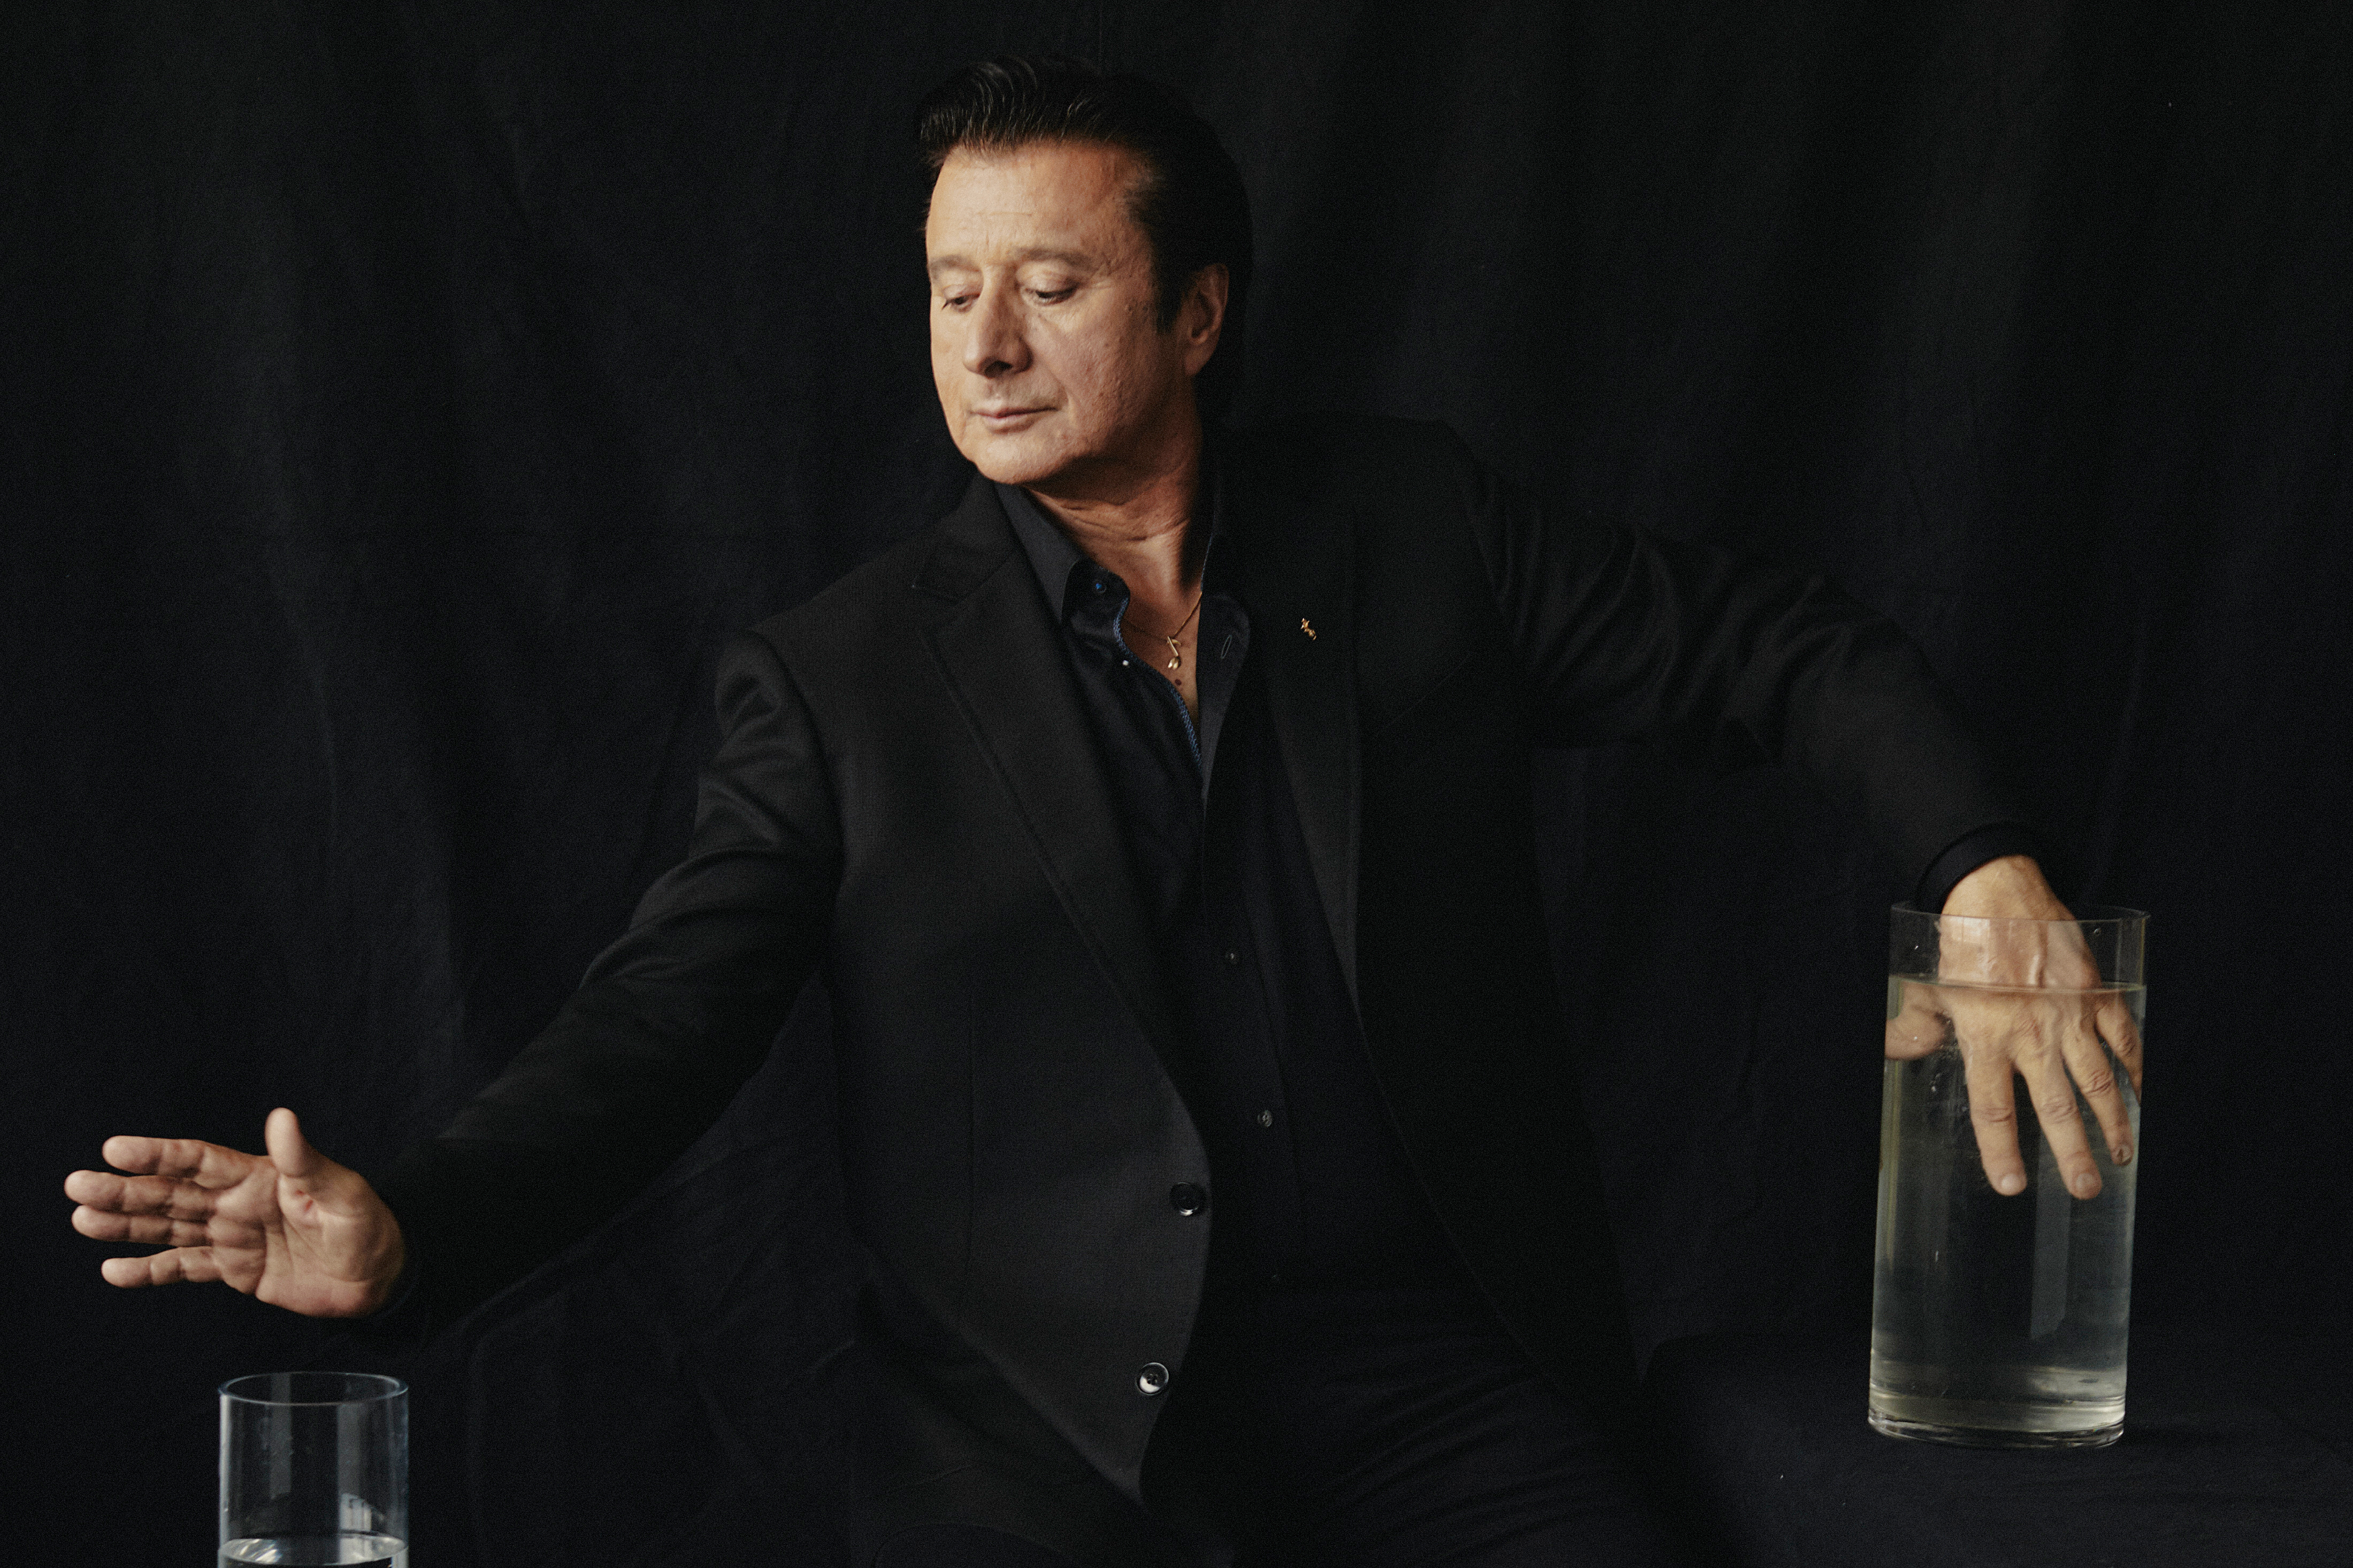 cddbca8ba18f8 Steve Perry on Leaving Journey, Vocal Issues, Arnel Pineda ...